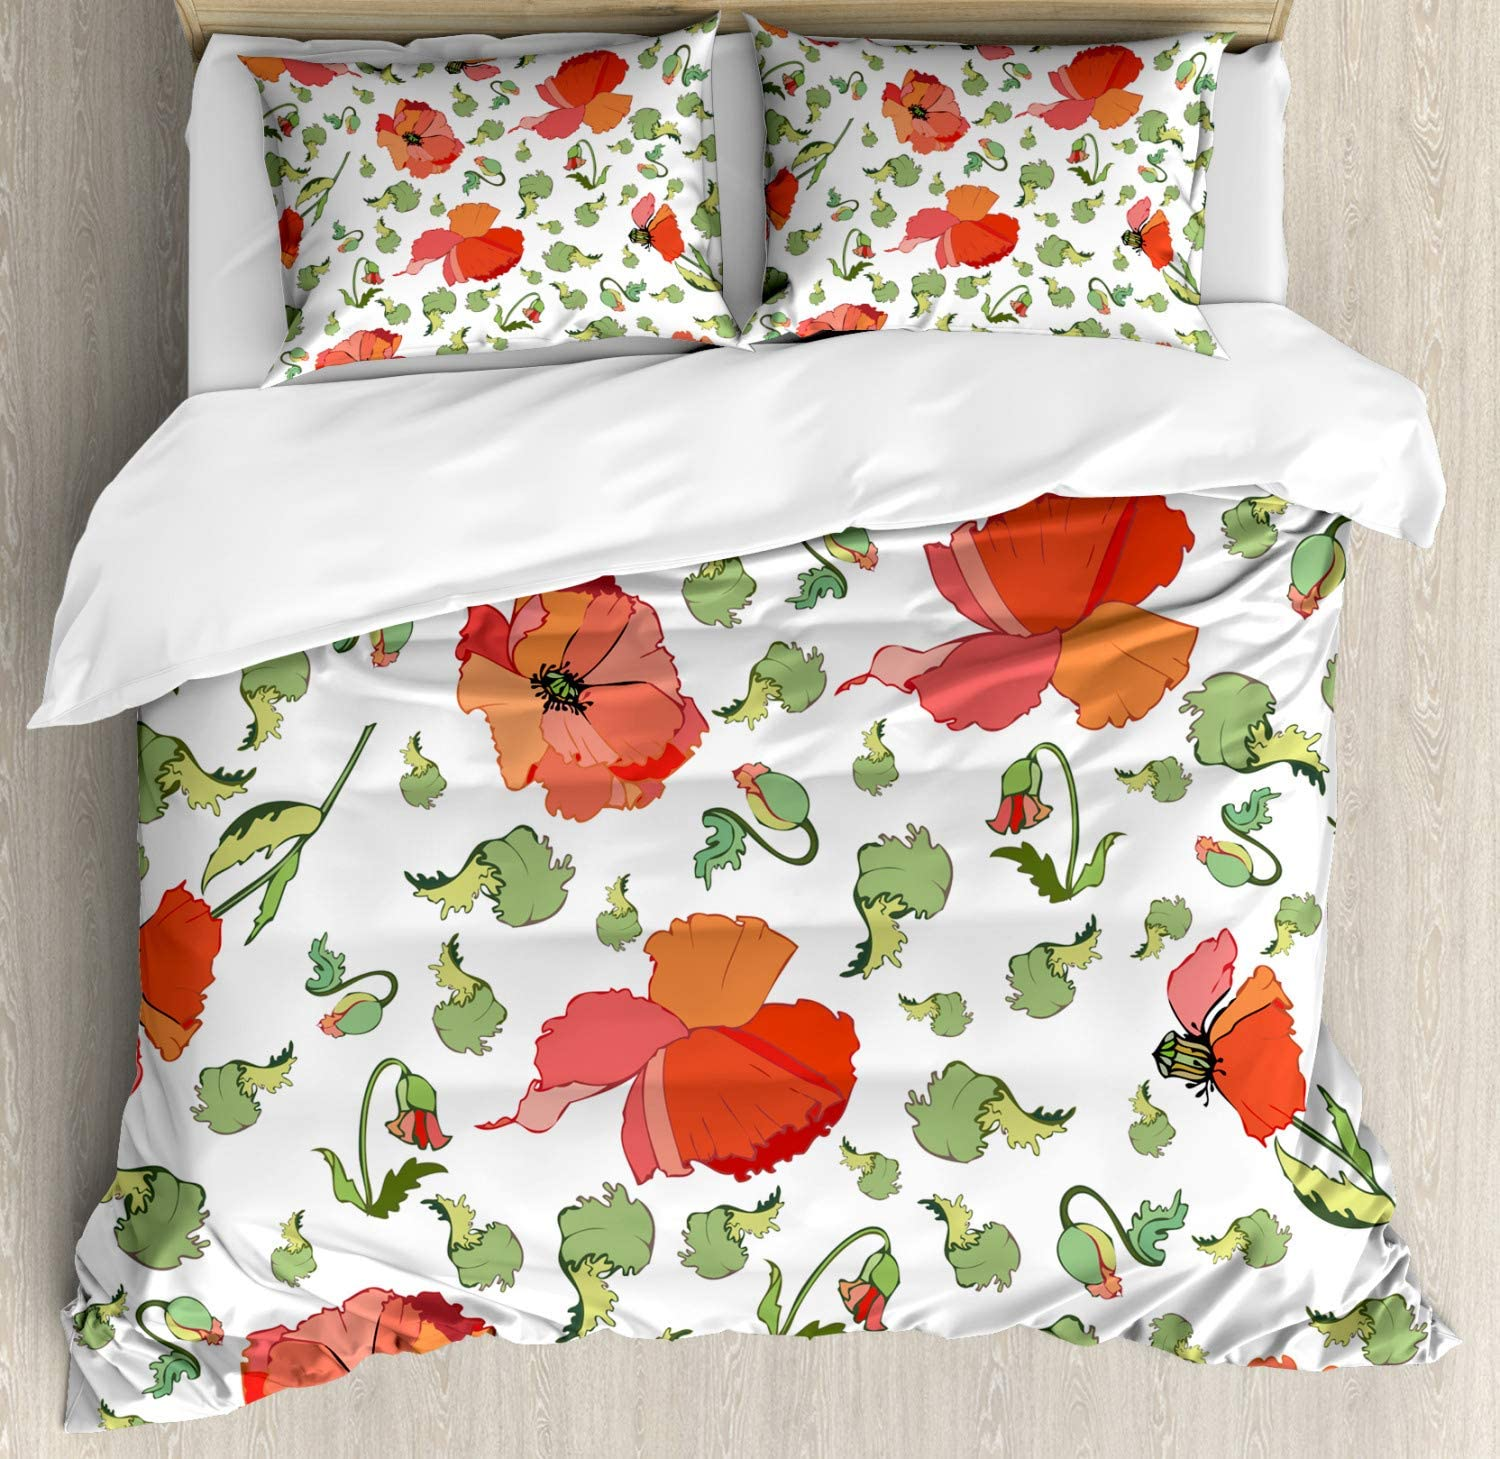 Amazon Com Ambesonne Poppy Flower Duvet Cover Set Buds Stems And Heads Scattered Hand Drawn Style Rural Inflorescence Decorative 3 Piece Bedding Set With 2 Pillow Shams Queen Size Vermilion Green Coral Home